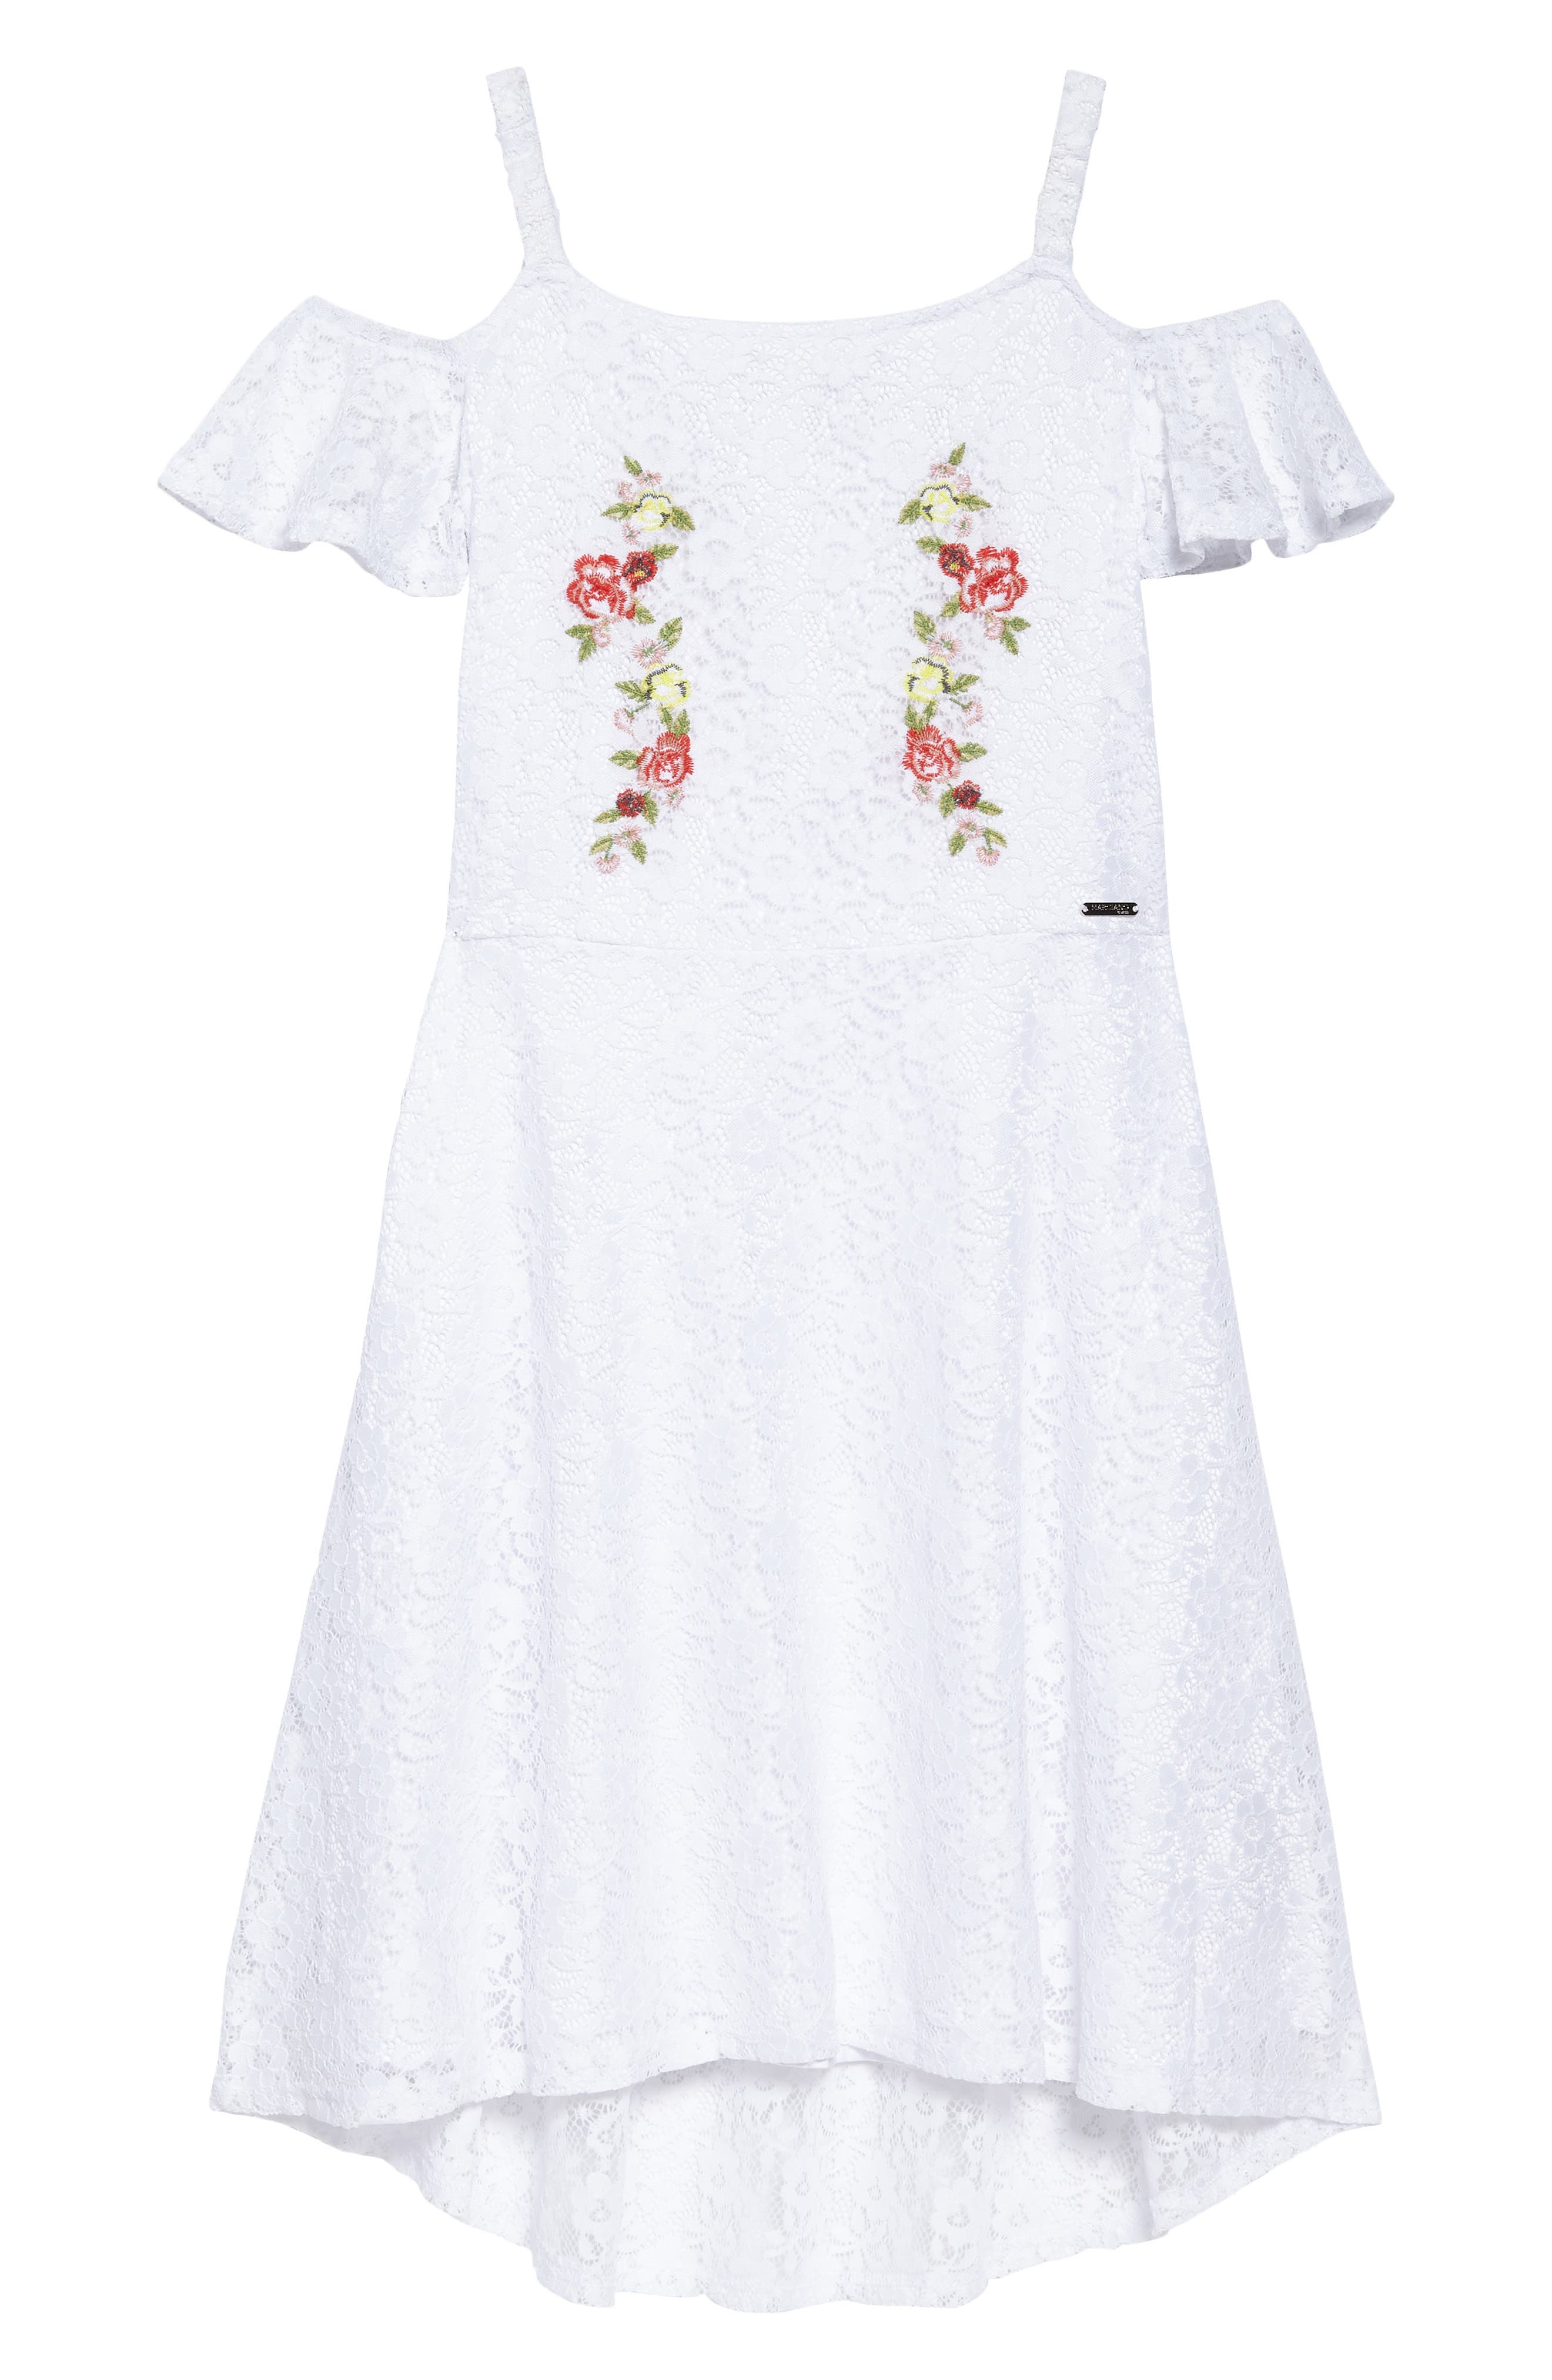 MARCIANO,                             Embroidered Lace Cold Shoulder Dress,                             Main thumbnail 1, color,                             118